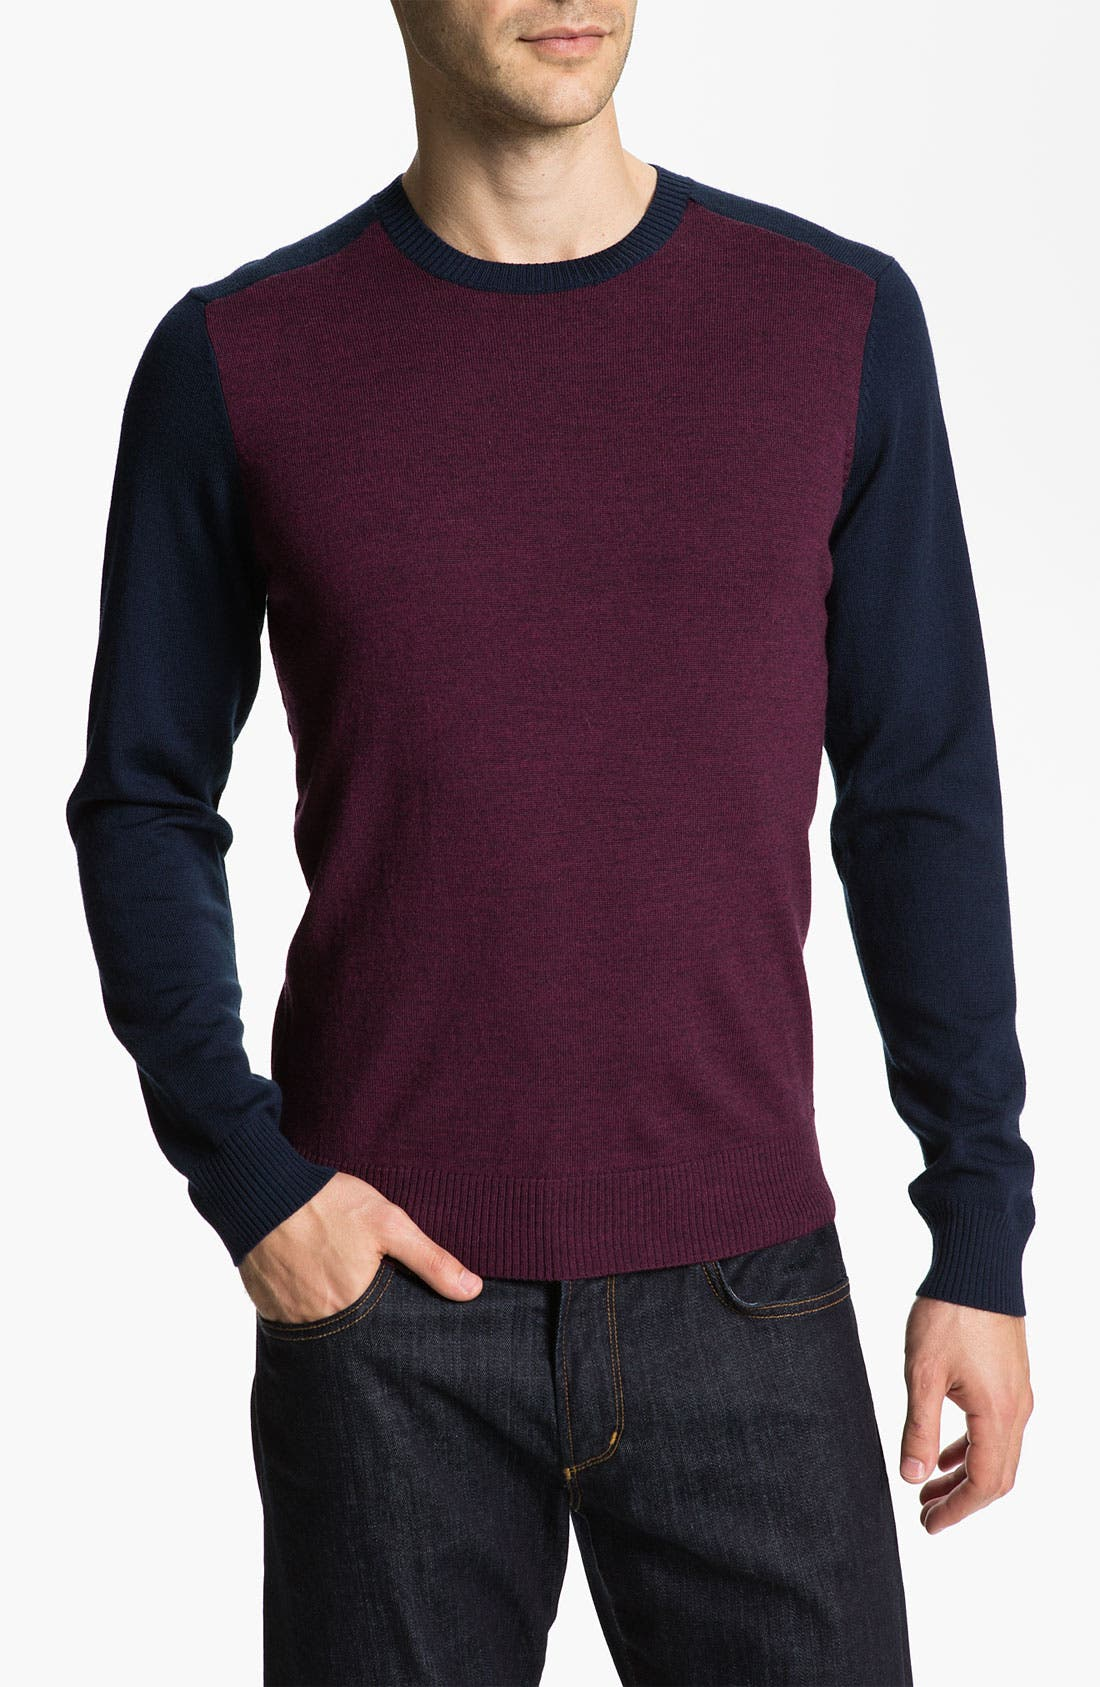 Main Image - Cullen89 Merino Wool Sweater